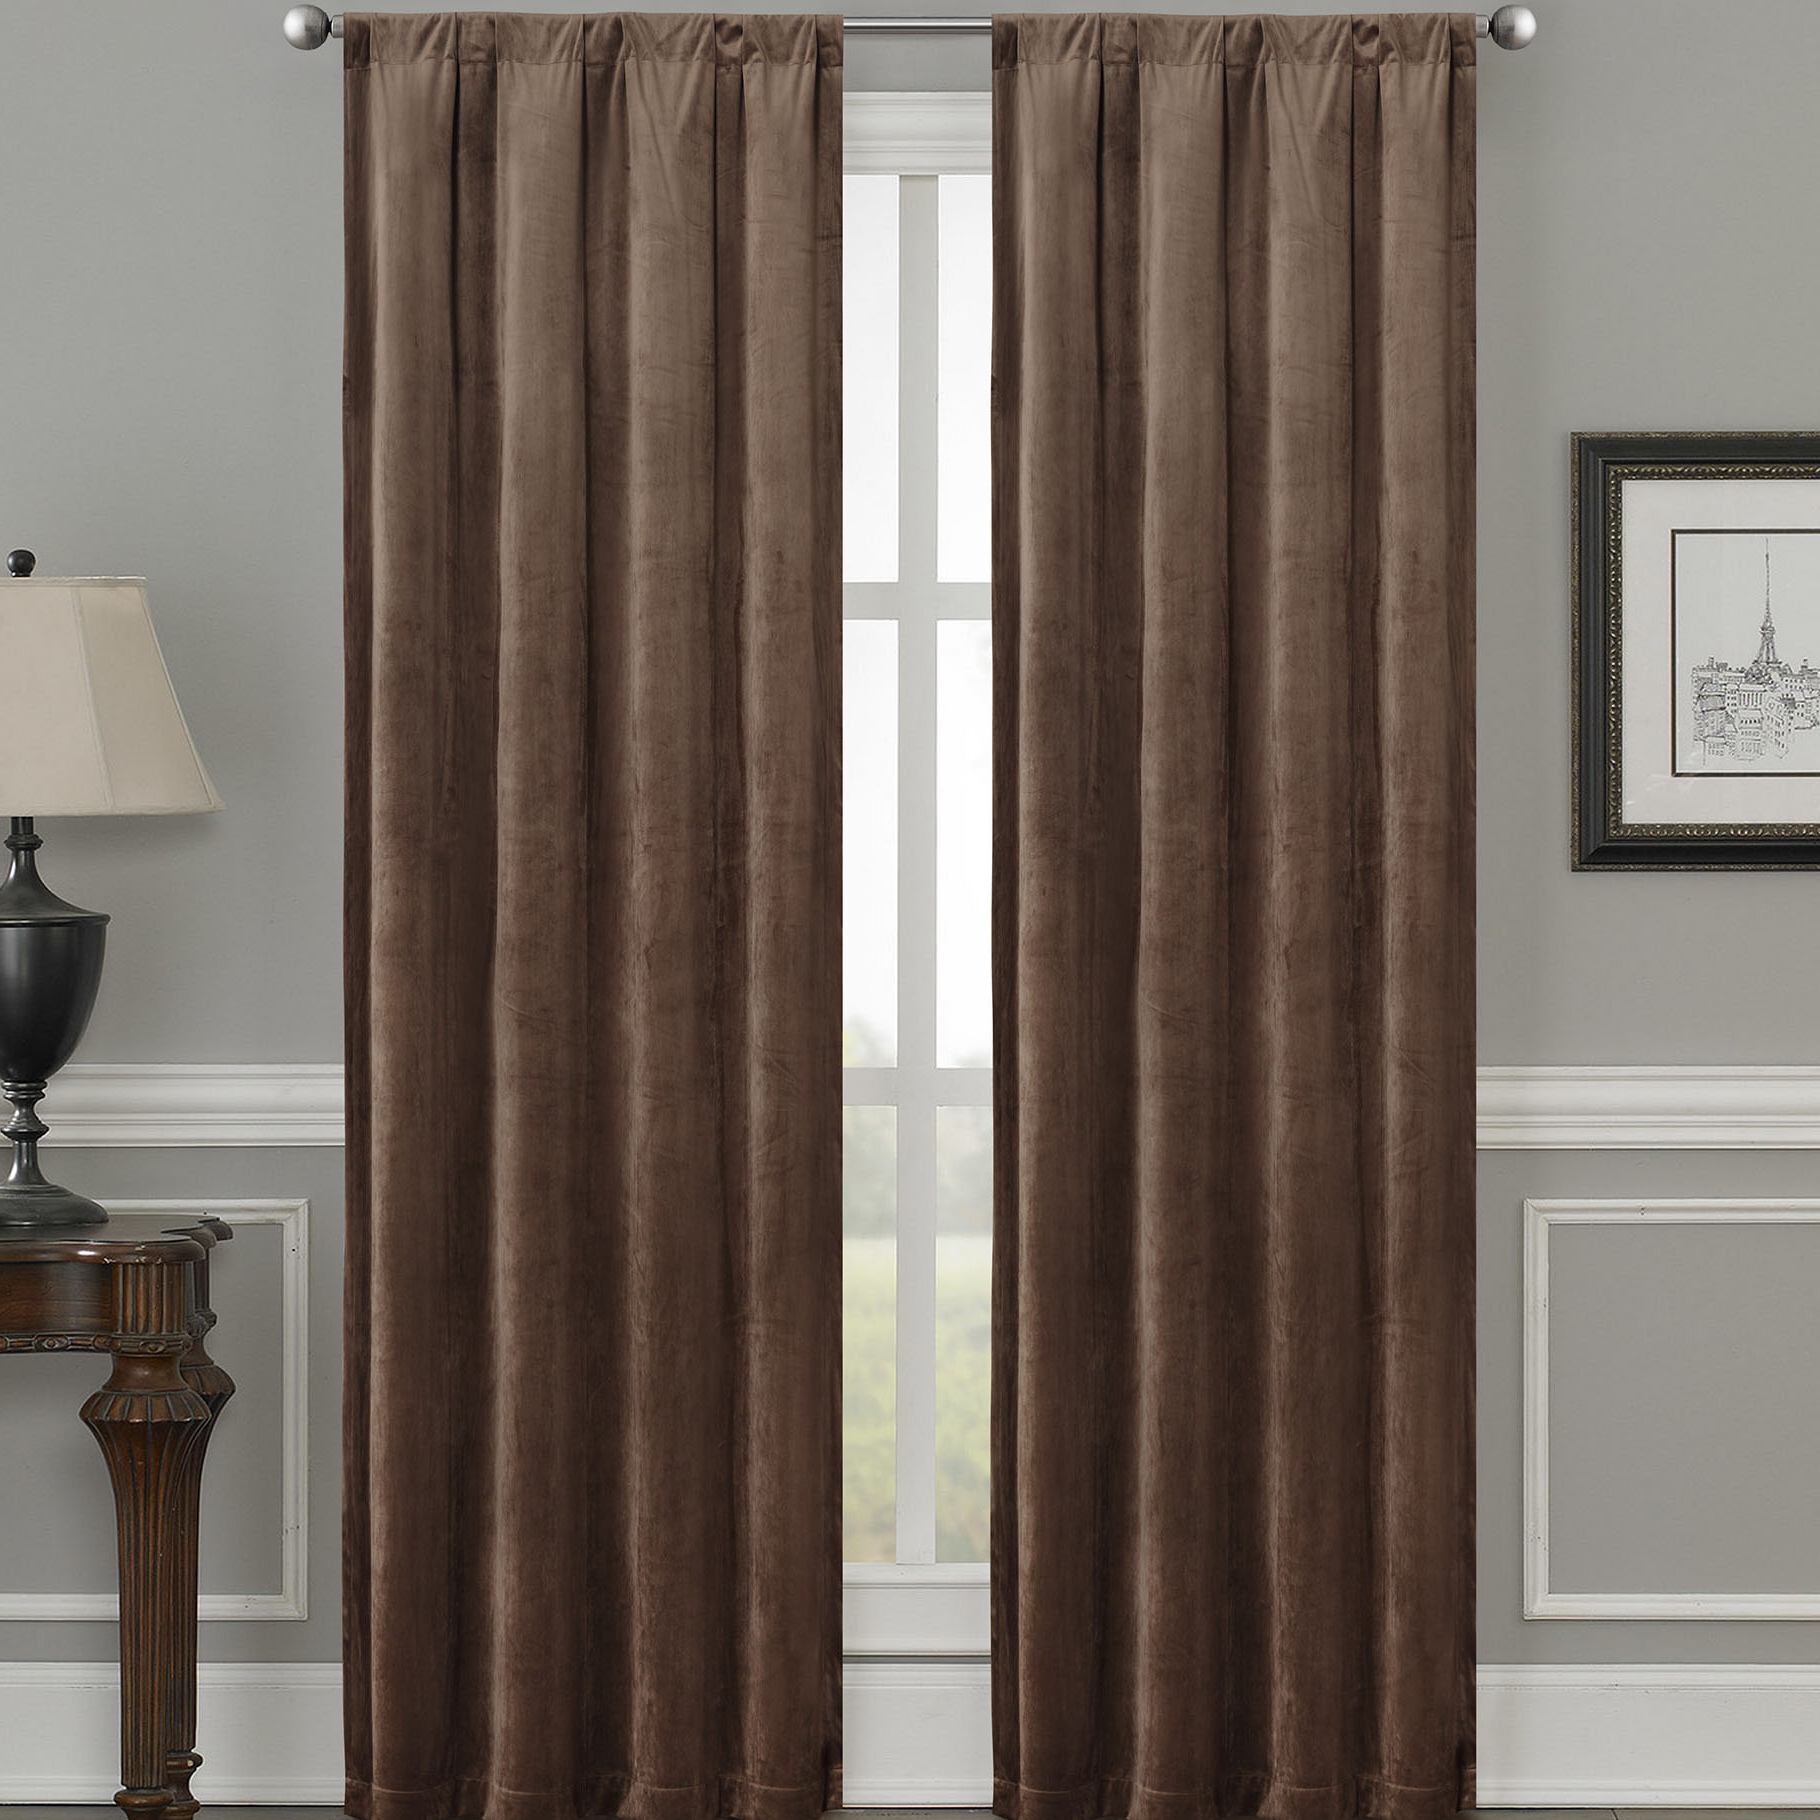 Fashionable Velvet Solid Room Darkening Window Curtain Panel Sets In Bomar Luxury Velvet Solid Color Room Darkening Thermal Rod Pocket Curtain  Panels (Gallery 20 of 20)